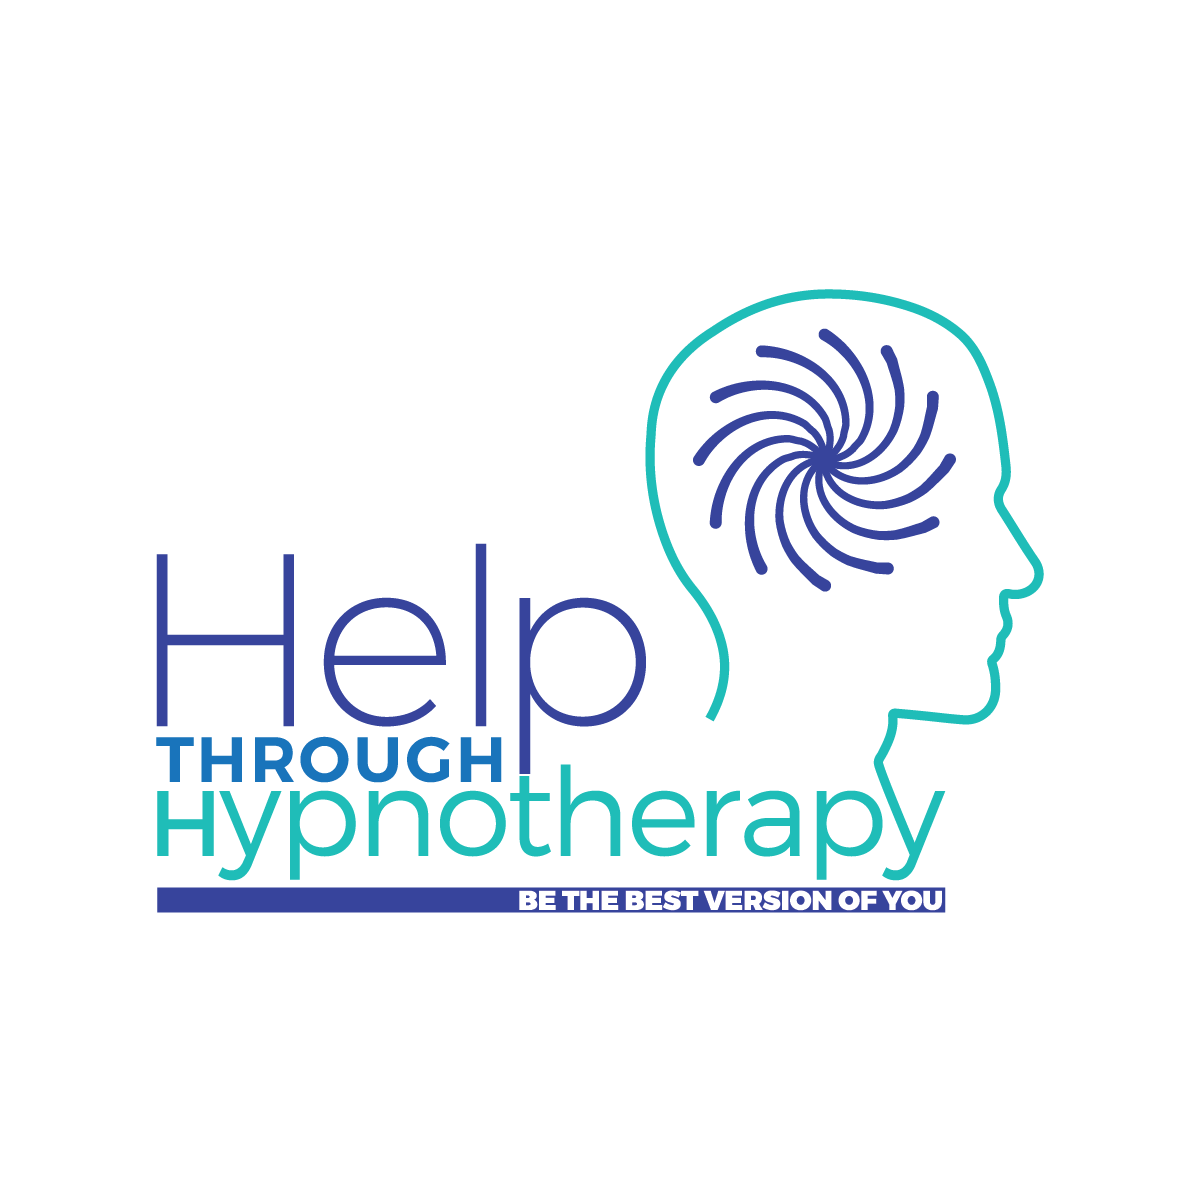 Help Through Hypnotherapy Branding Identity